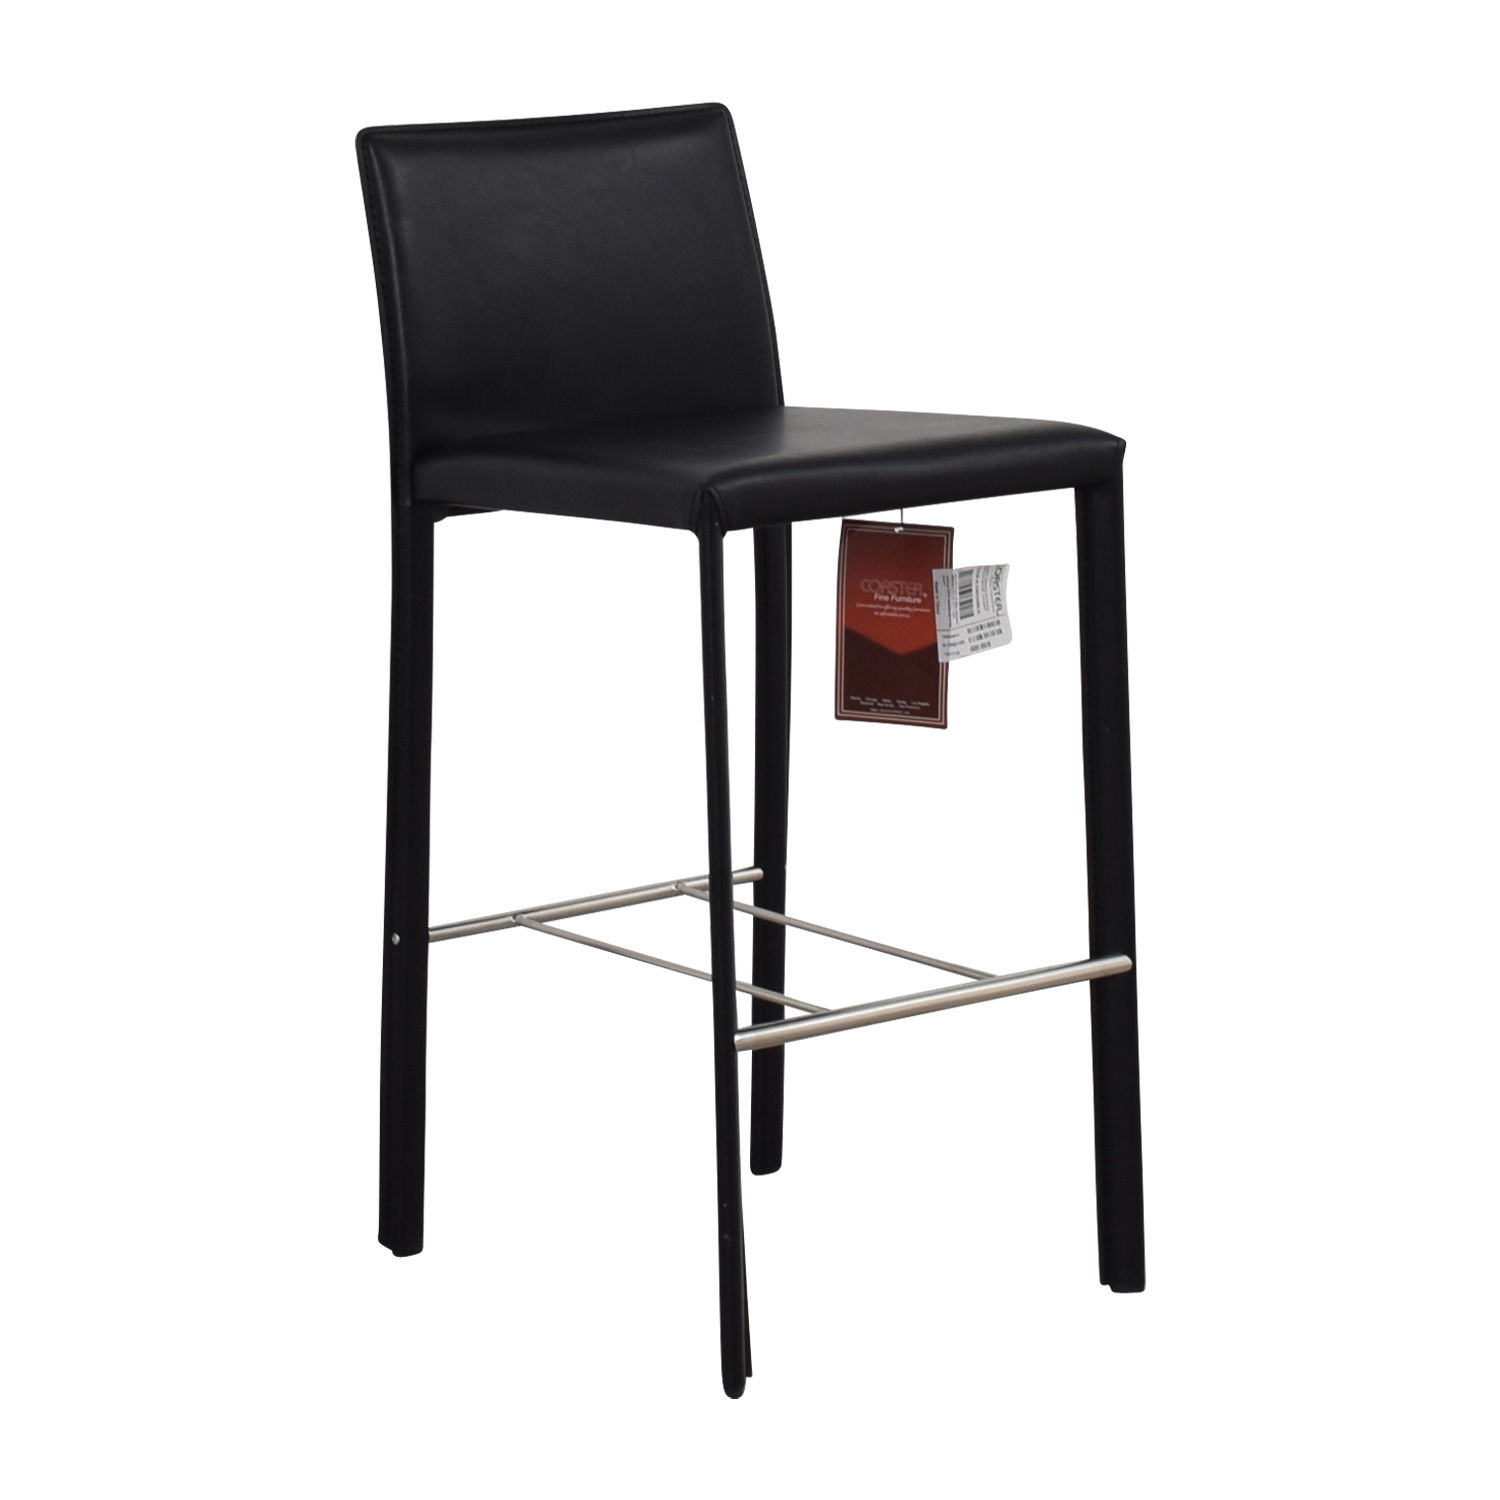 Coaster Coaster Modern Black Leatherette Bar Chair